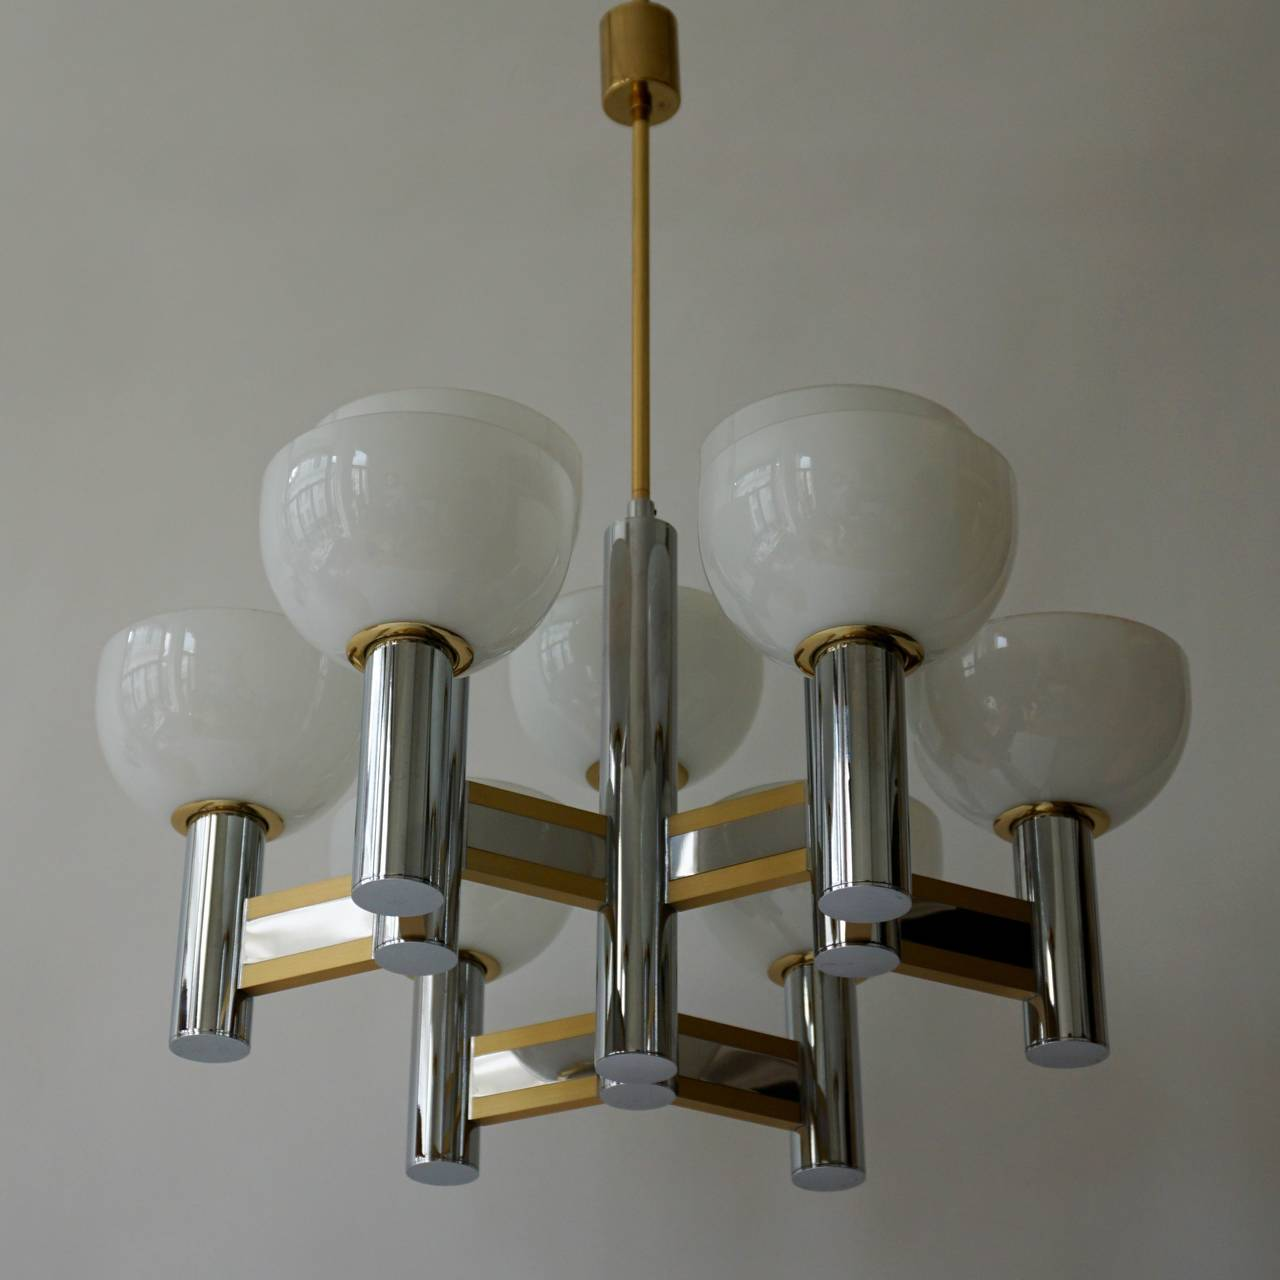 Sciolari geometric chrome and brass plated chandelier with nine Murano glass coupes. The total weight of the chandelier is 8 kg.